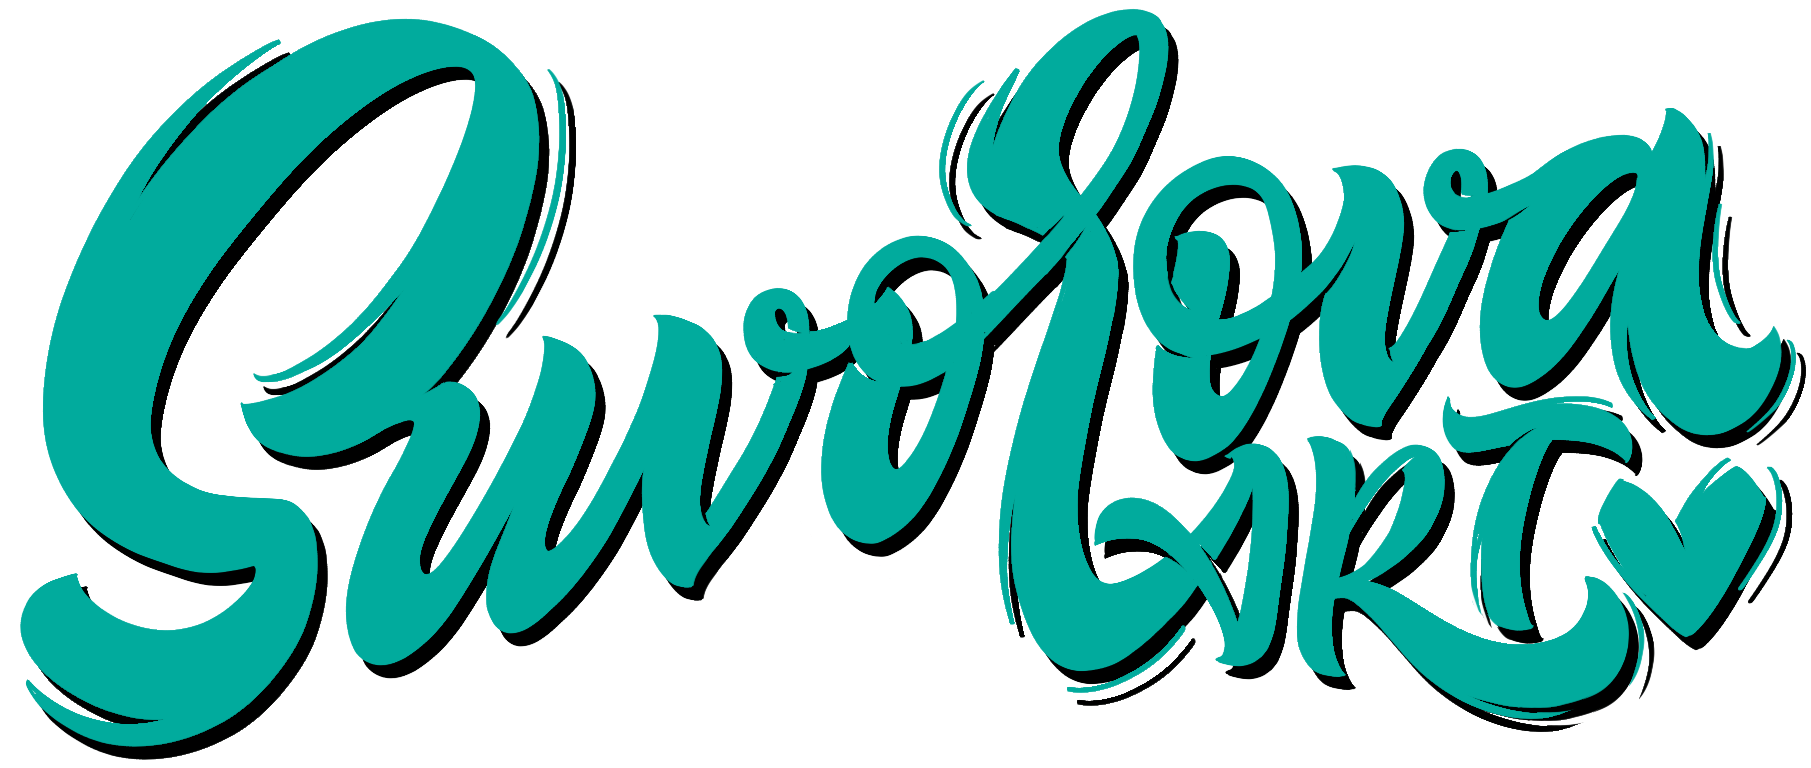 Calligraphy+Lettering